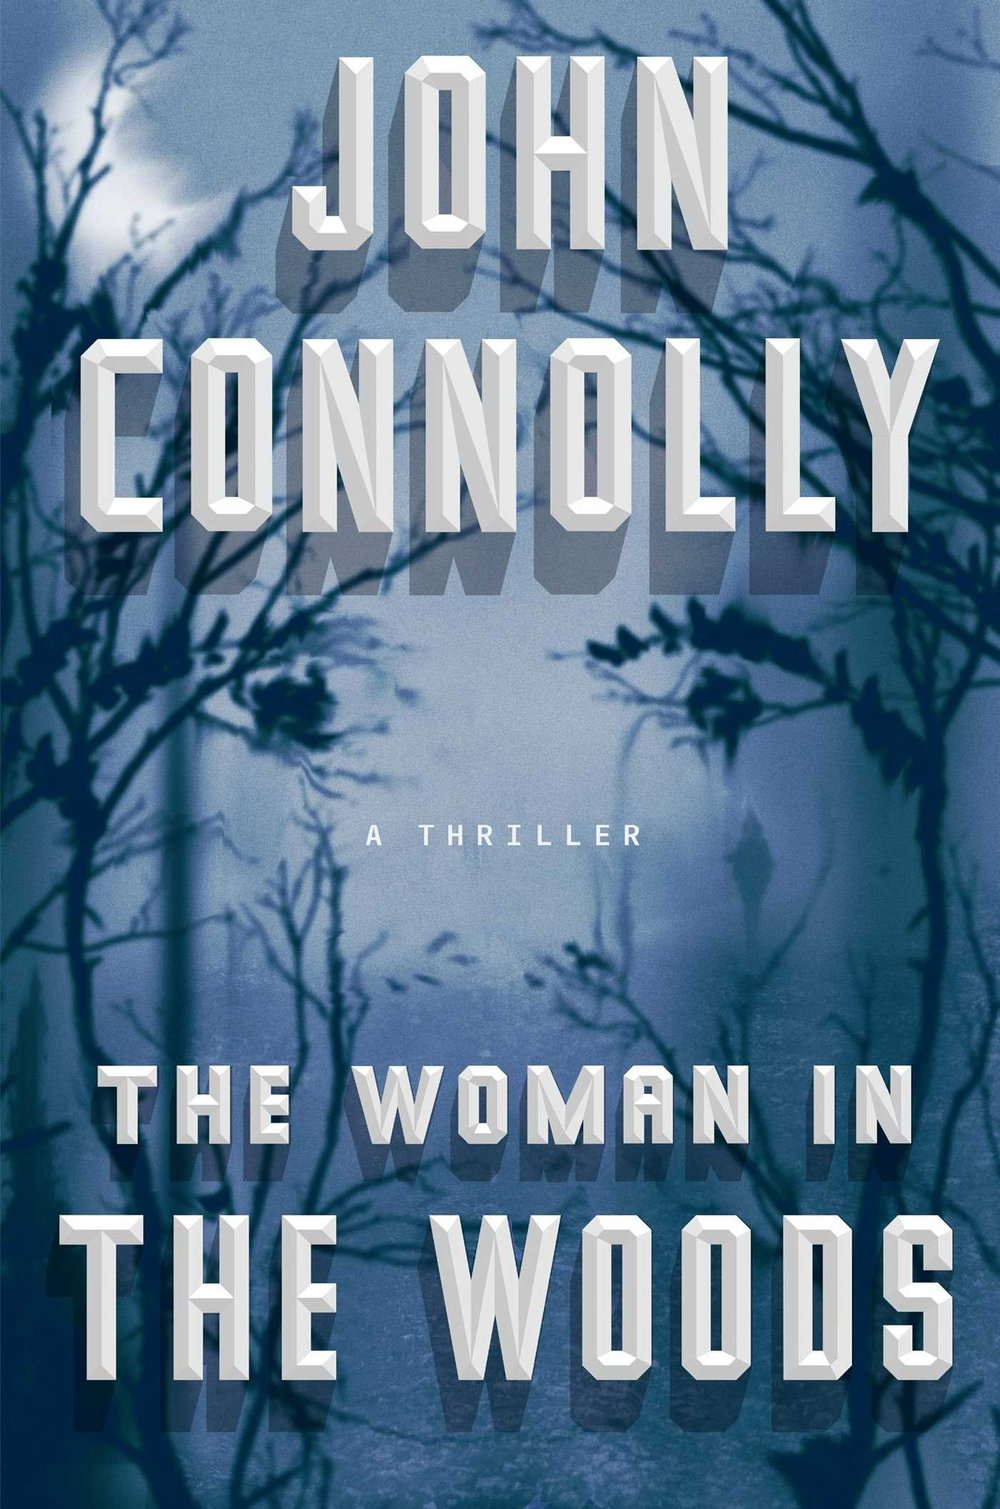 The Woman In the Woods_John Connolly.jpg